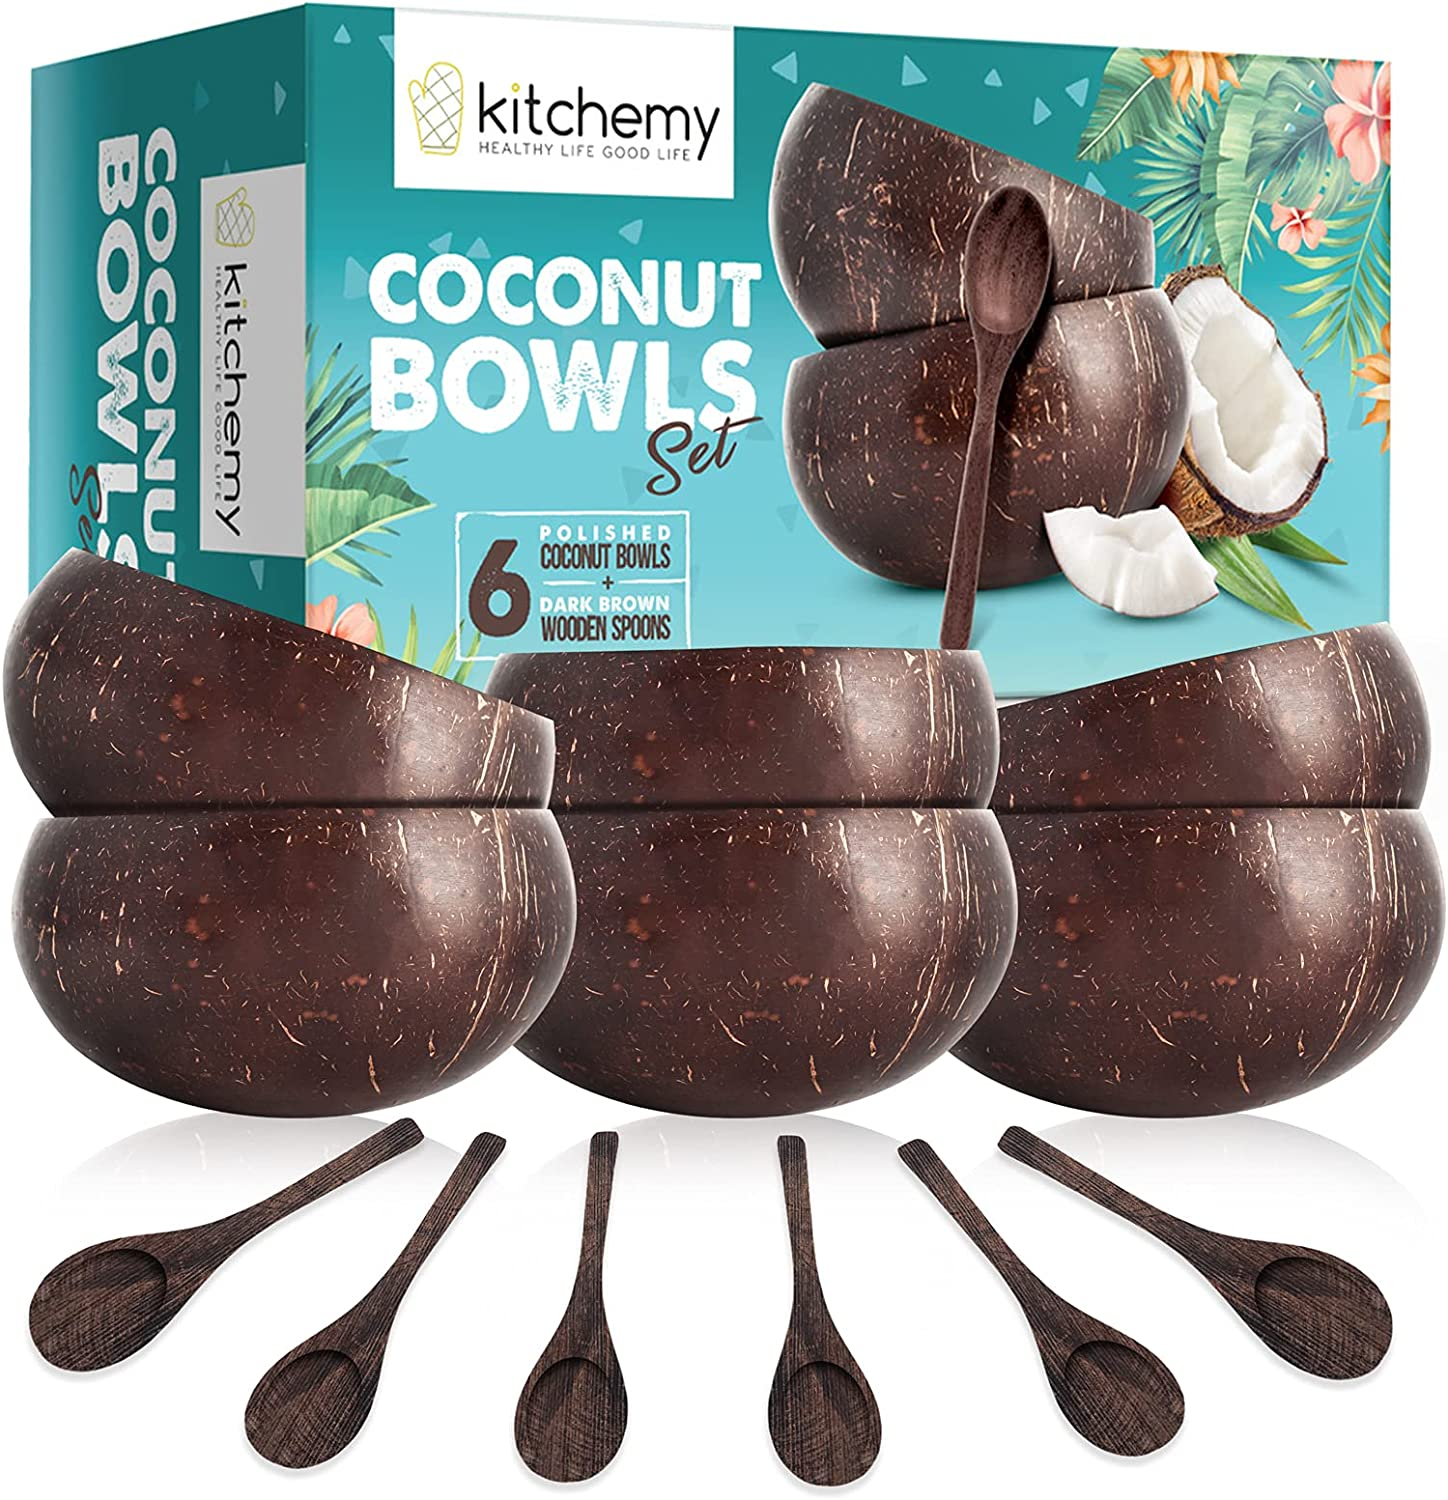 6 Coconut Bowls for Smoothie Acai Bowl - Unique Gift Natural Polished Shaped Handmade Reusable Containers for Serving Breakfast Vegan Salad Home Desk Office Party - Kitchen Decor - 6 Wooden Spoons